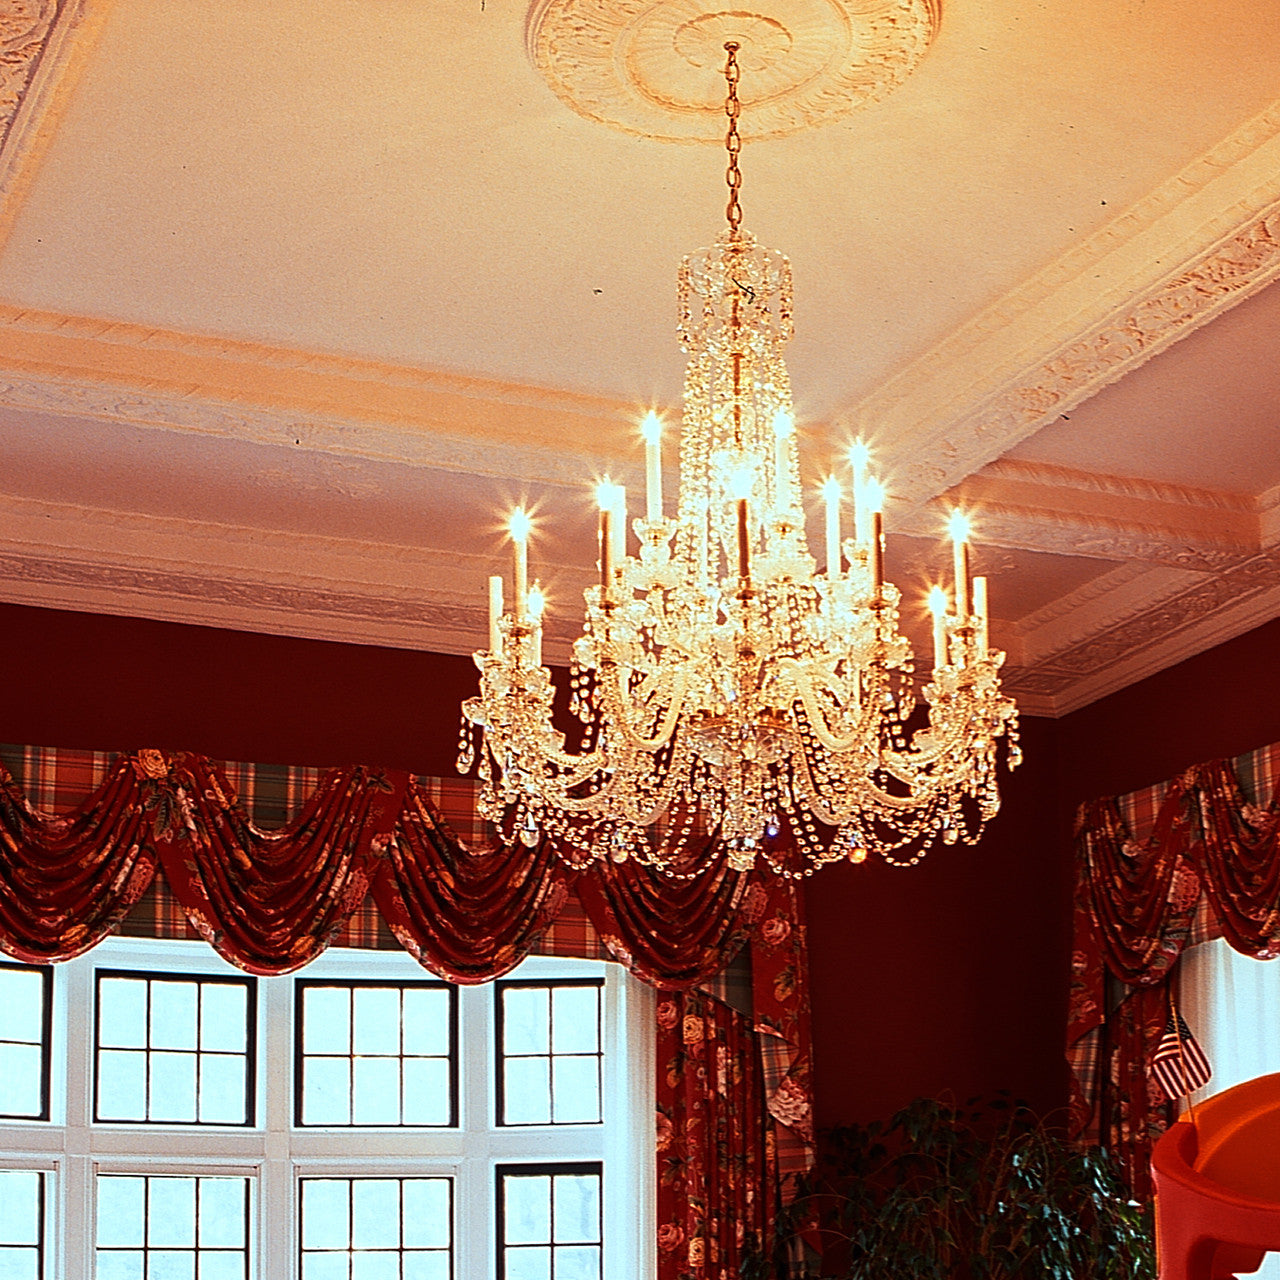 King 18 light crystal chandelier with swarovski 32 x 45 crystal chandelier king with swarovski king in foyer king in living room arubaitofo Images